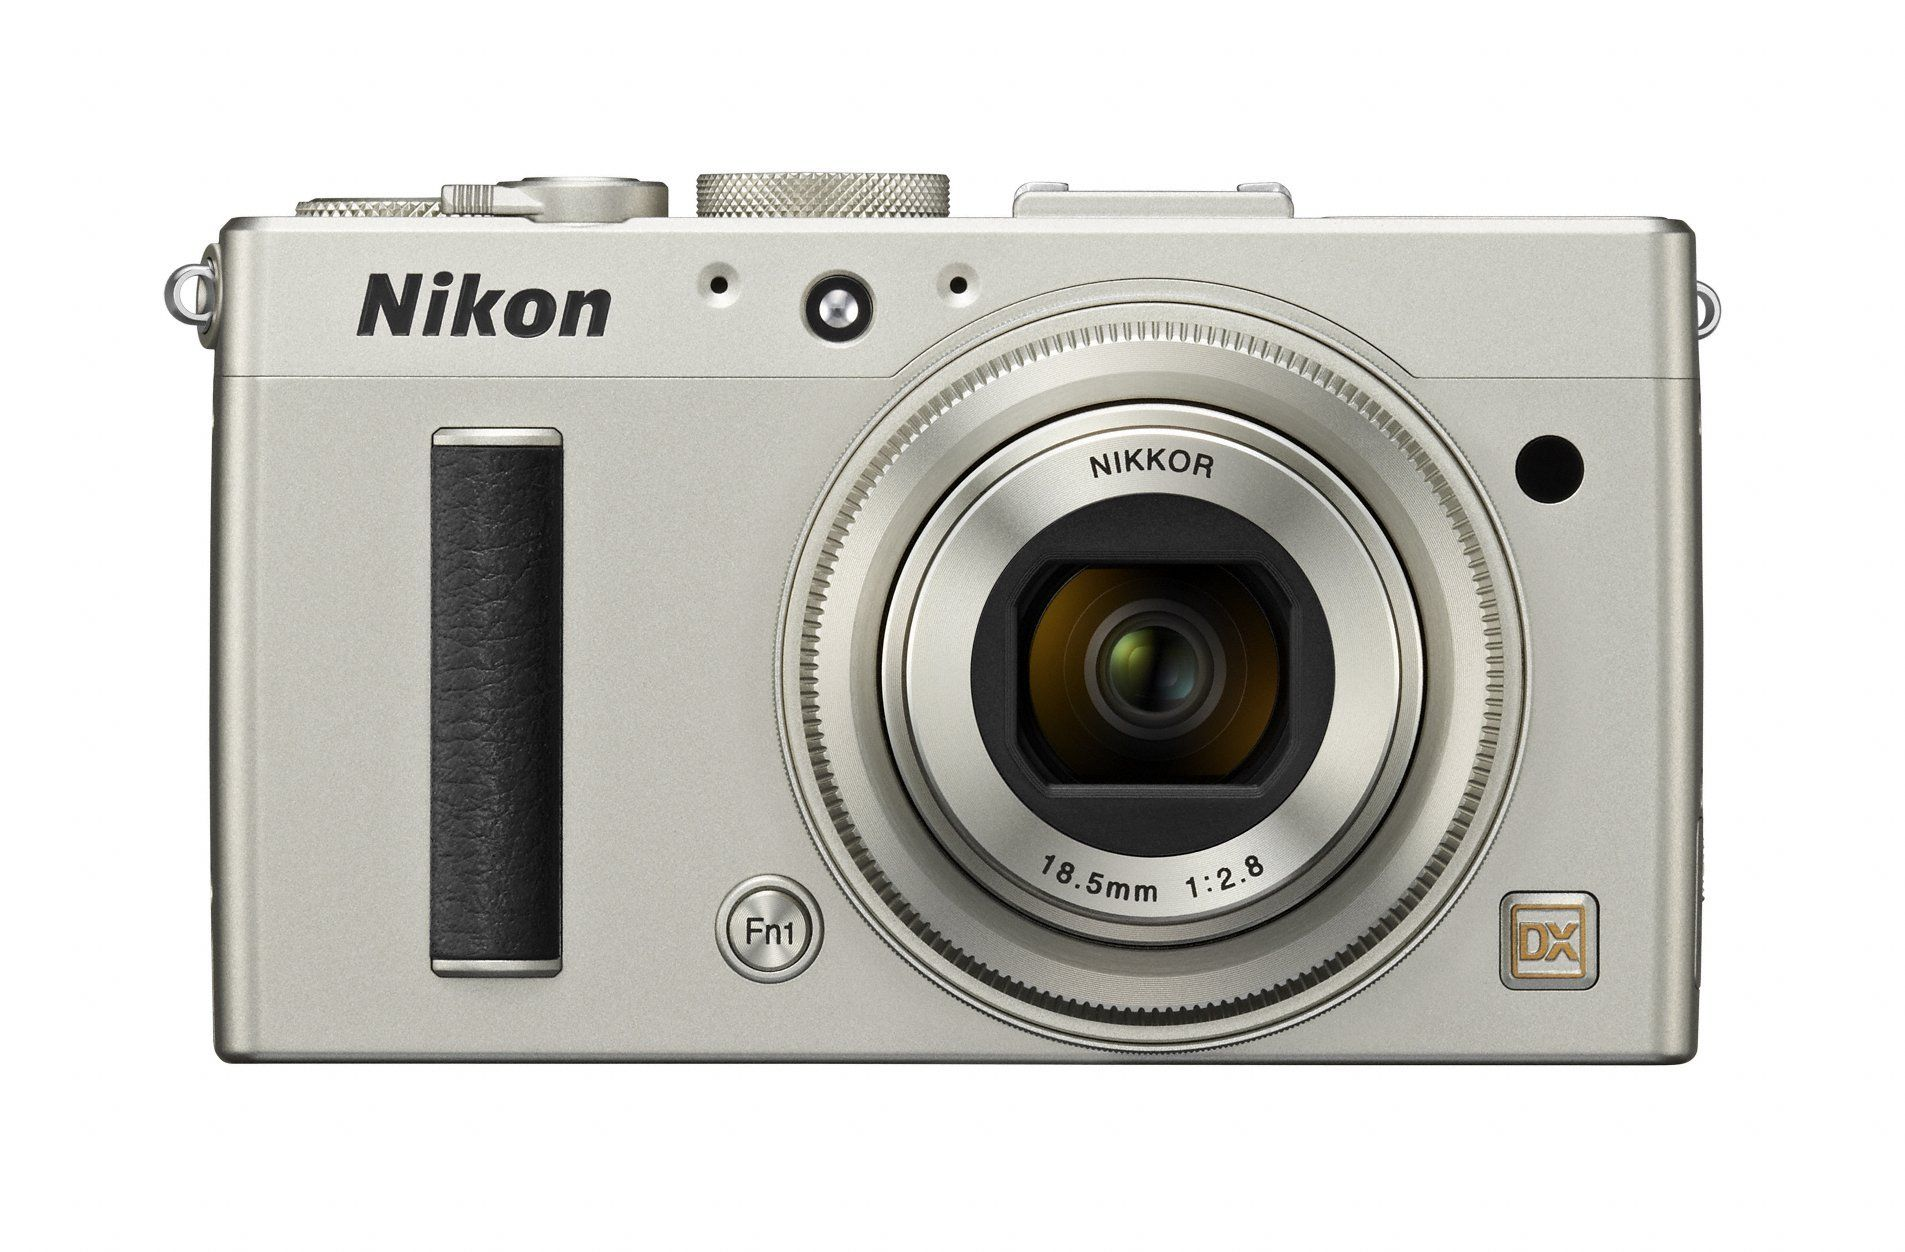 Nikon Coolpix A 16 2 Mp Digital Camera With 28mm F 2 8 Lens Silver Discontinued By Manufacturer 16mp Dx Format C Best Digital Camera Coolpix Nikon Coolpix